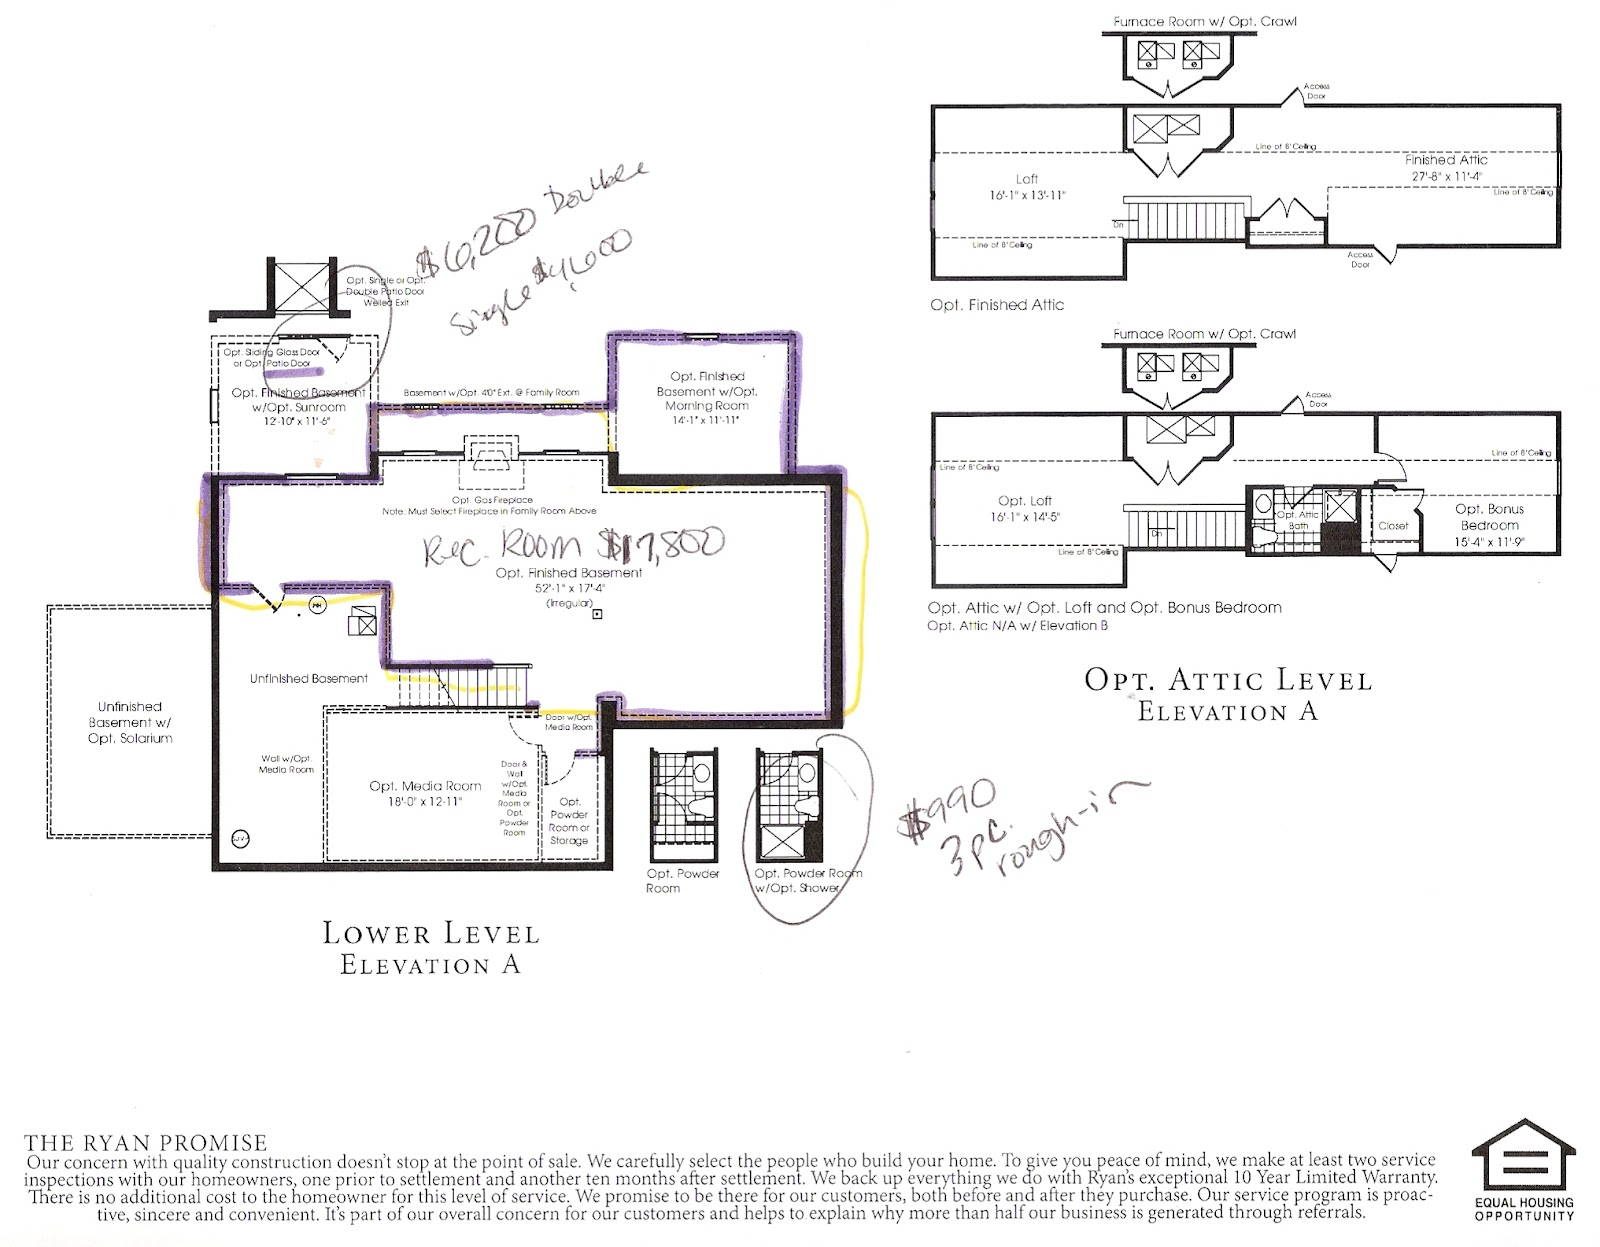 Building A Ryan Home Avalon The Beginning Stages The Options - Home floor plans with prices